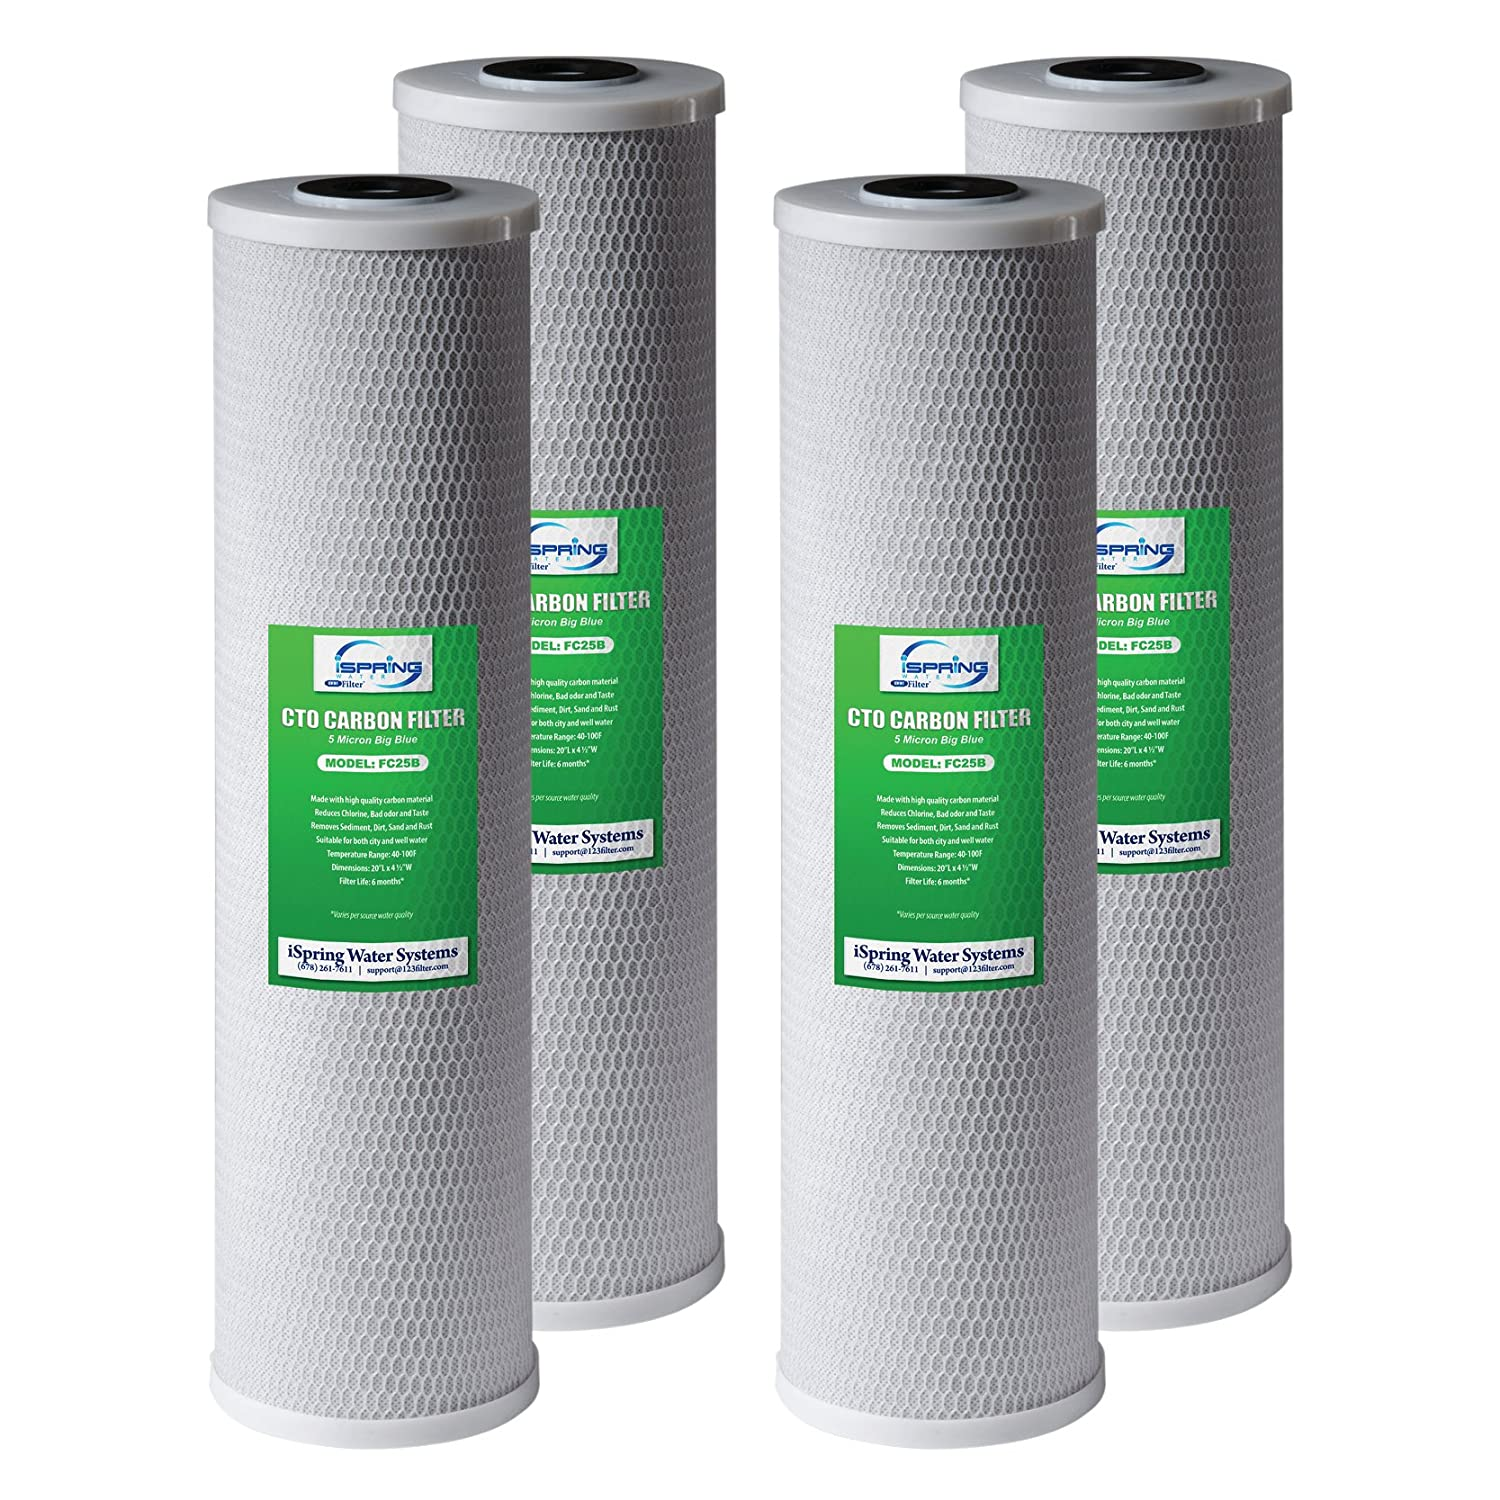 """iSpring FC25BX4 High Capacity 20"""" x 4.5"""" Water Filter Replacement Cartridges - CTO Carbon Block - Fits Standard 20"""" x 4.5"""" Whole House Water Filter Systems - Reducing up to 99% Chlorine - Pack of 4"""